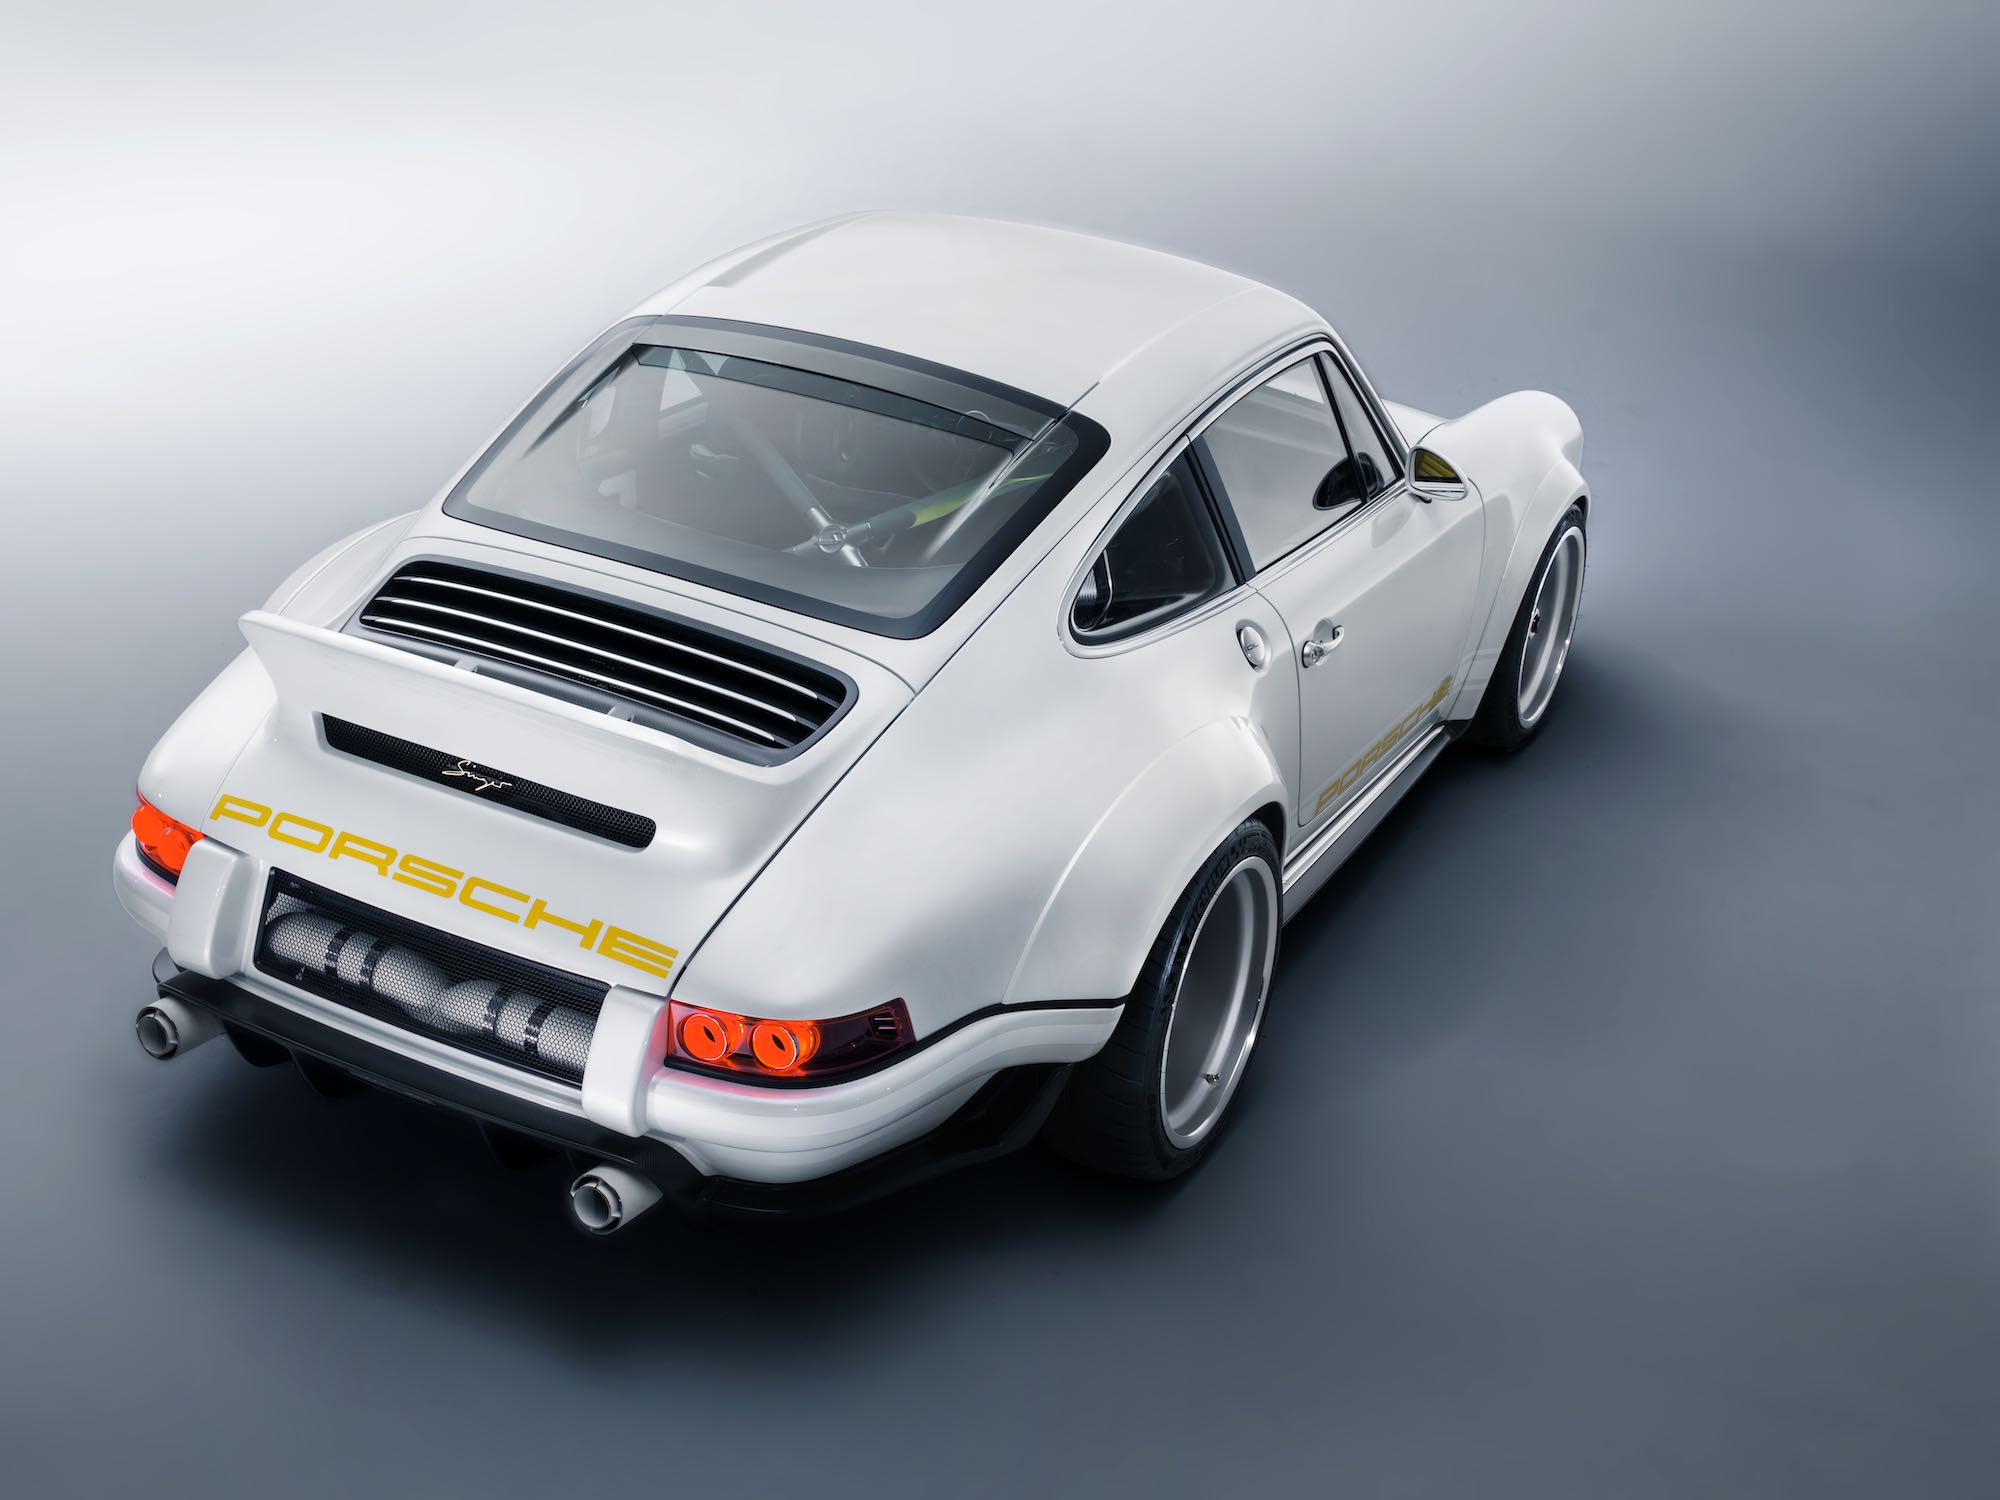 Singer Vehicle Design 911 Dynamics and Lightweighting Study